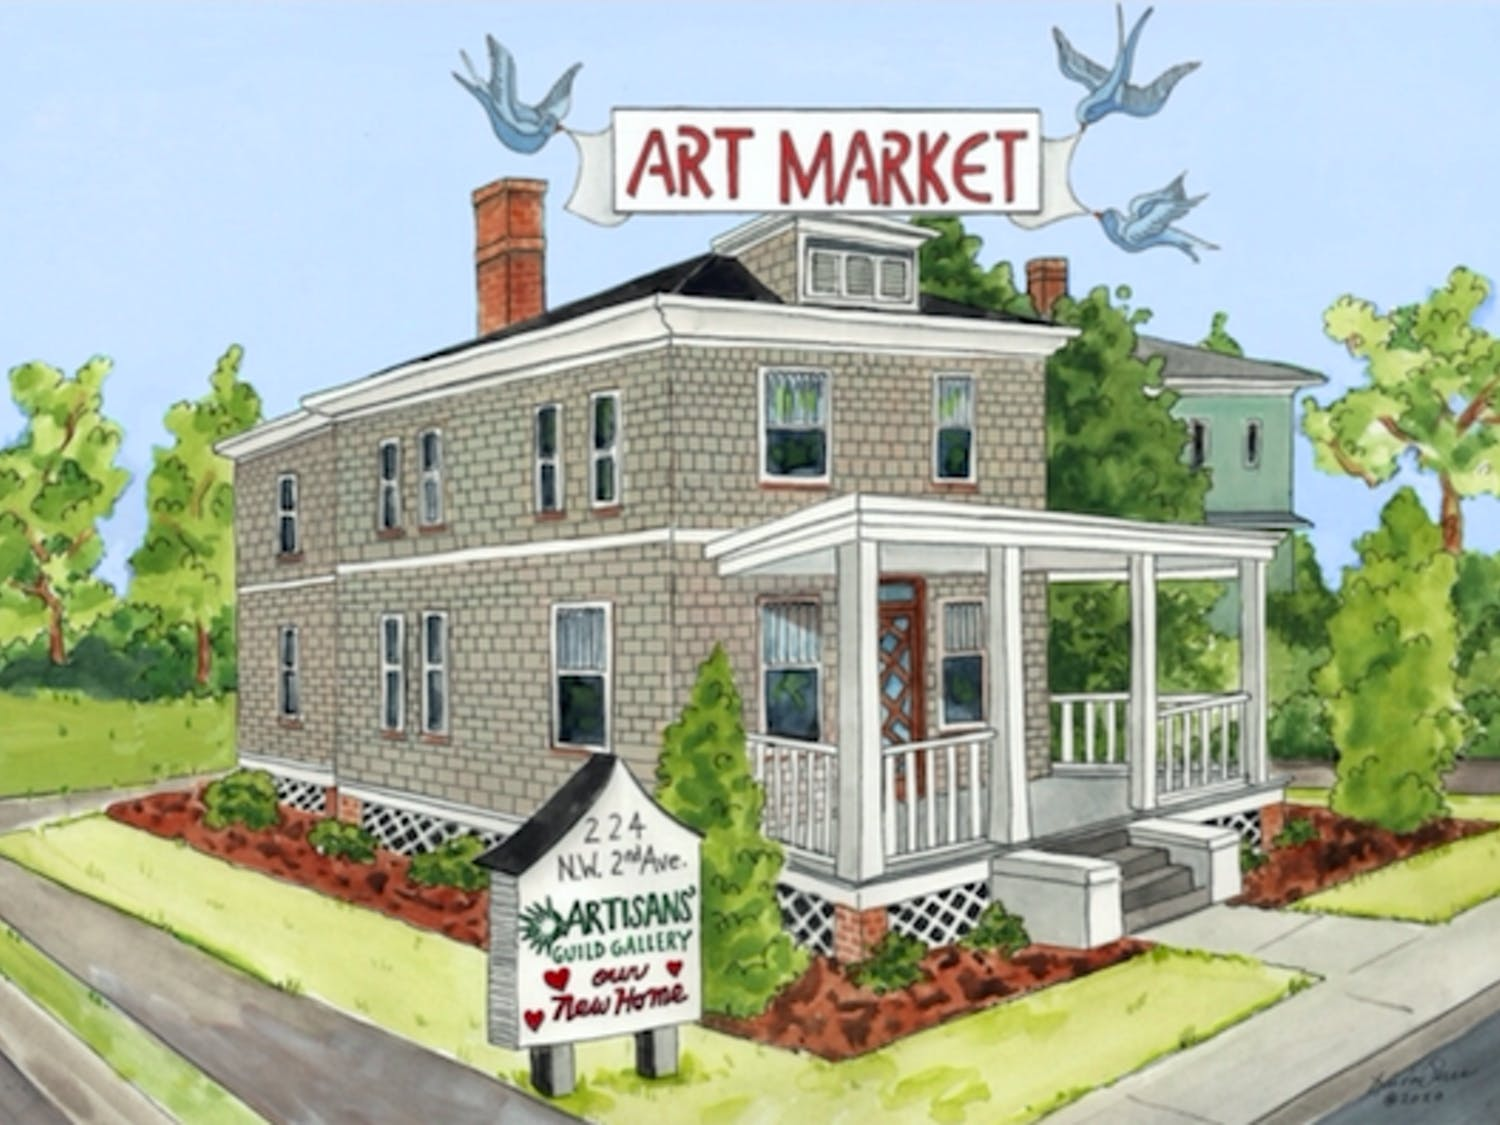 The Artisans' Guild Guide is holding its first outdoor art market at its new gallery location at224 NW Second Ave. in downtown Gainesville.